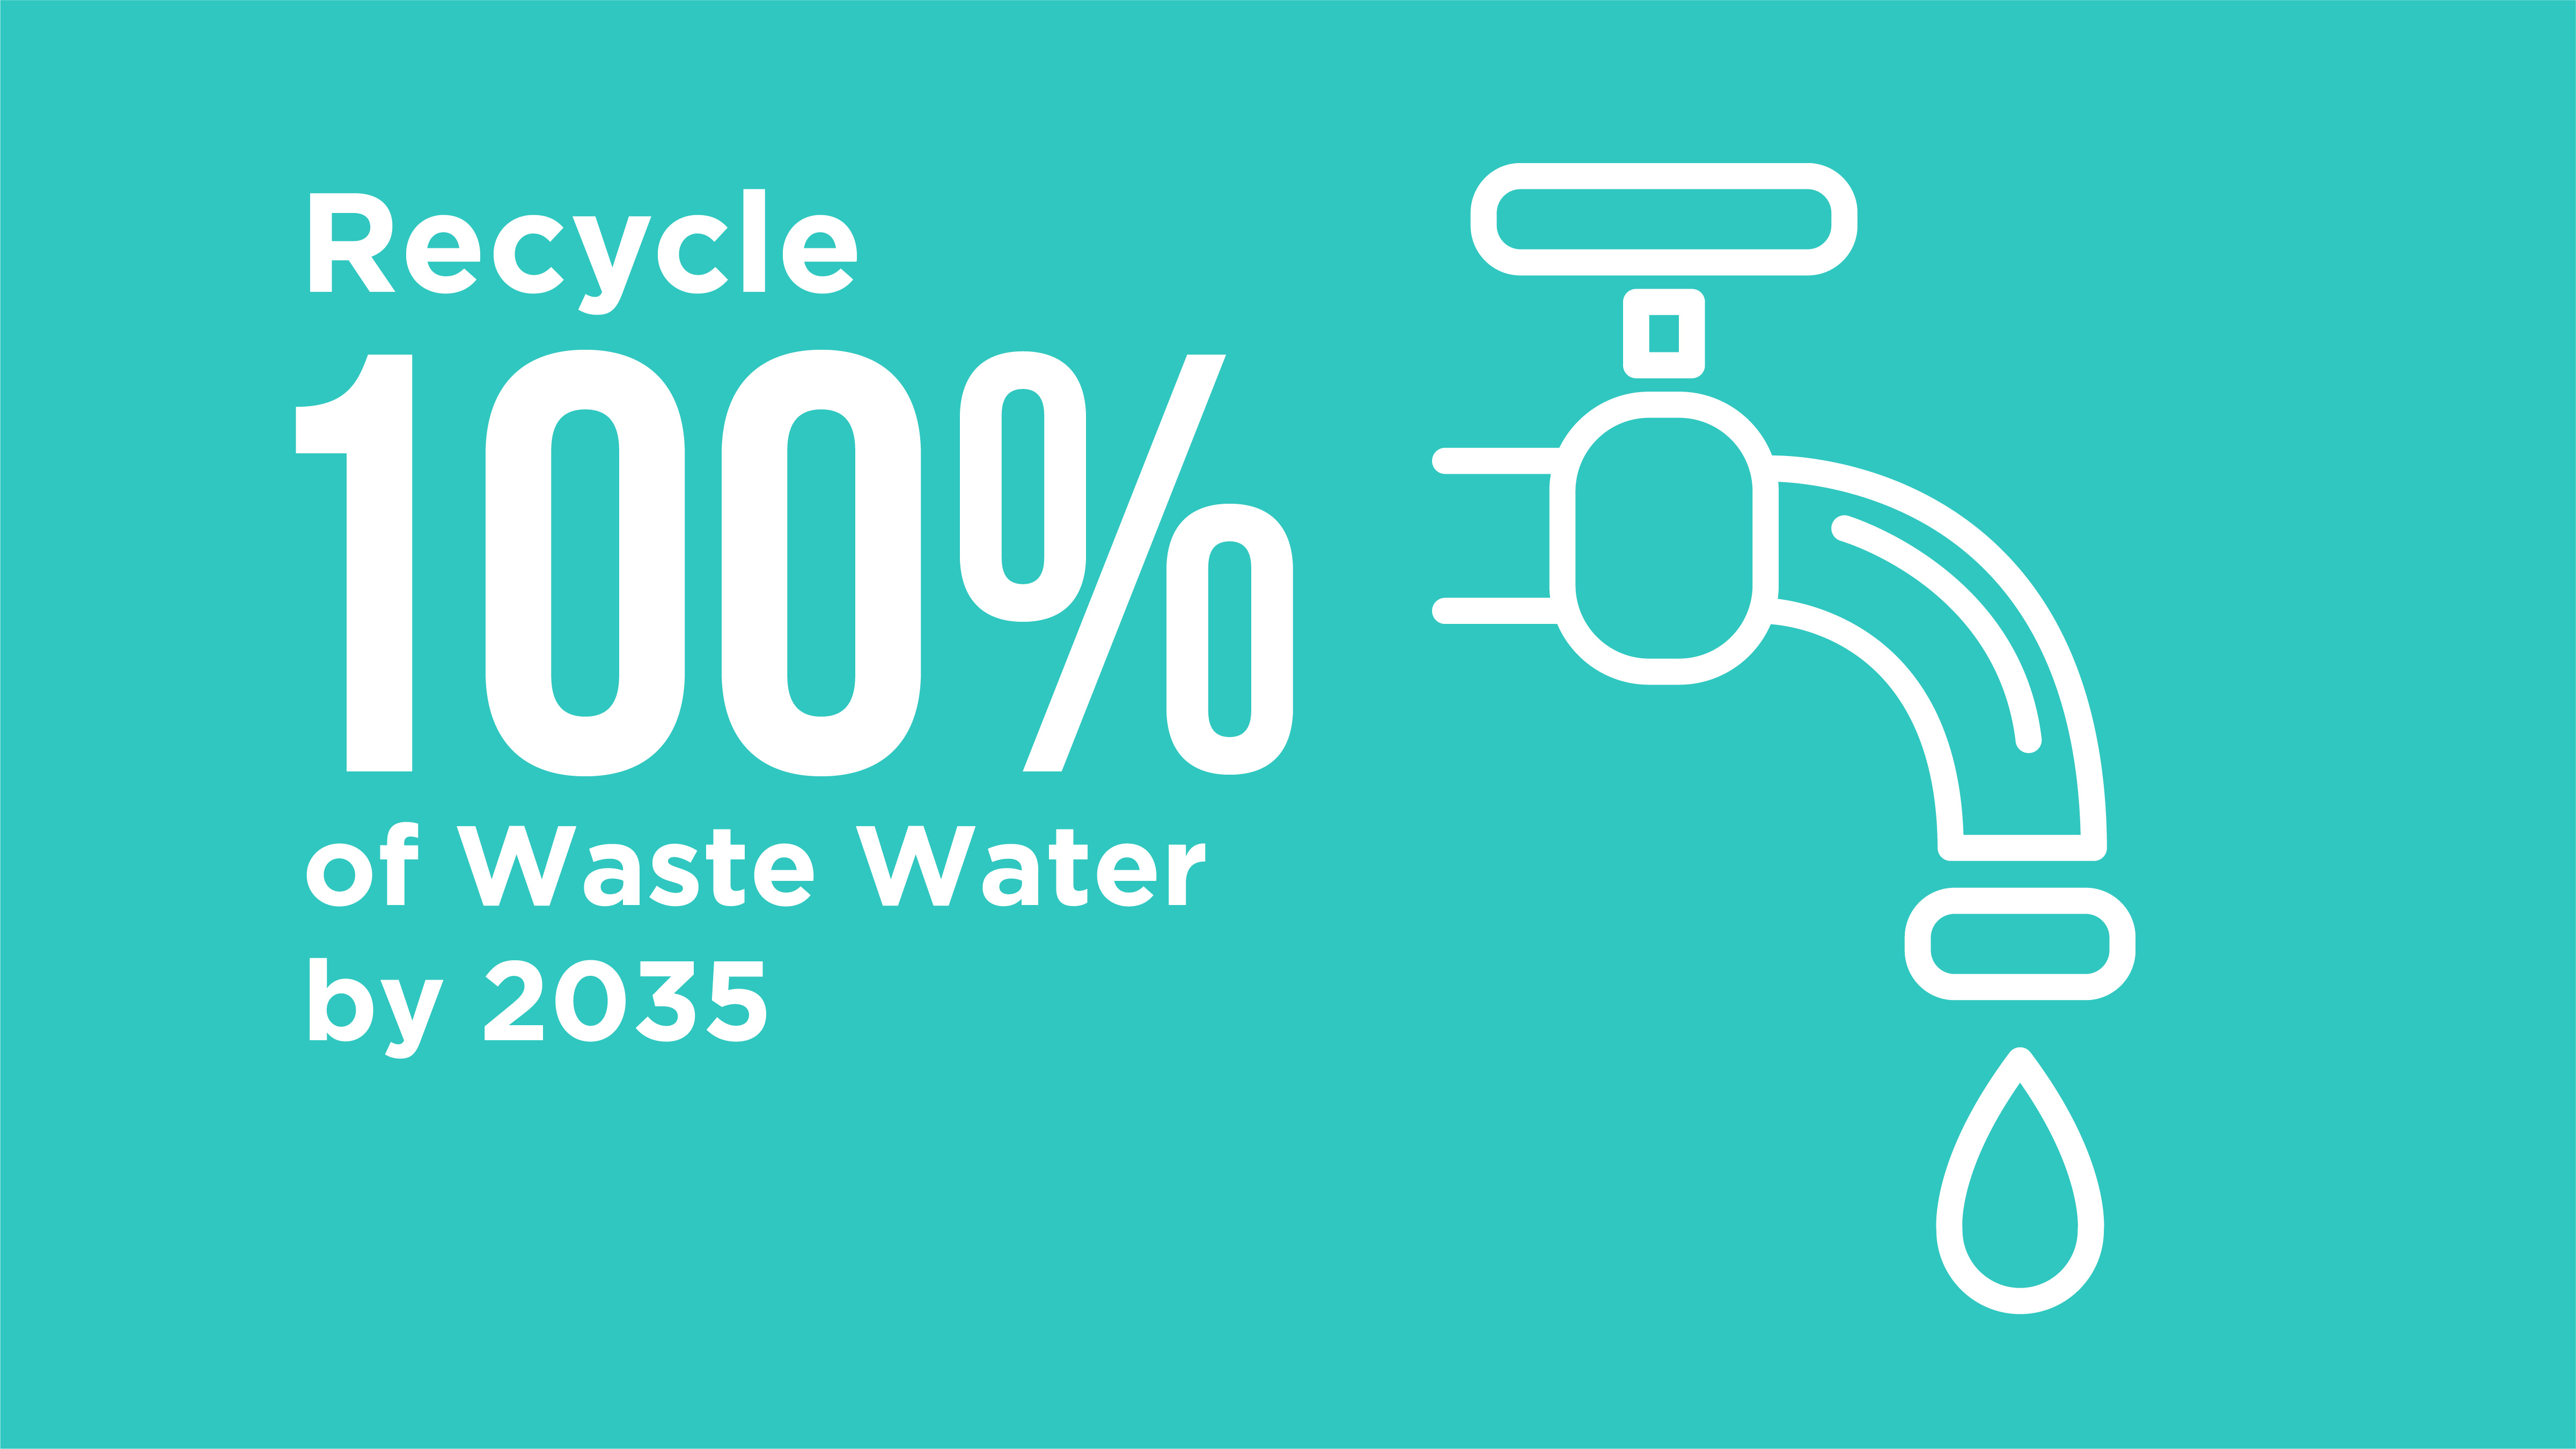 Recycle 100% of all wastewater